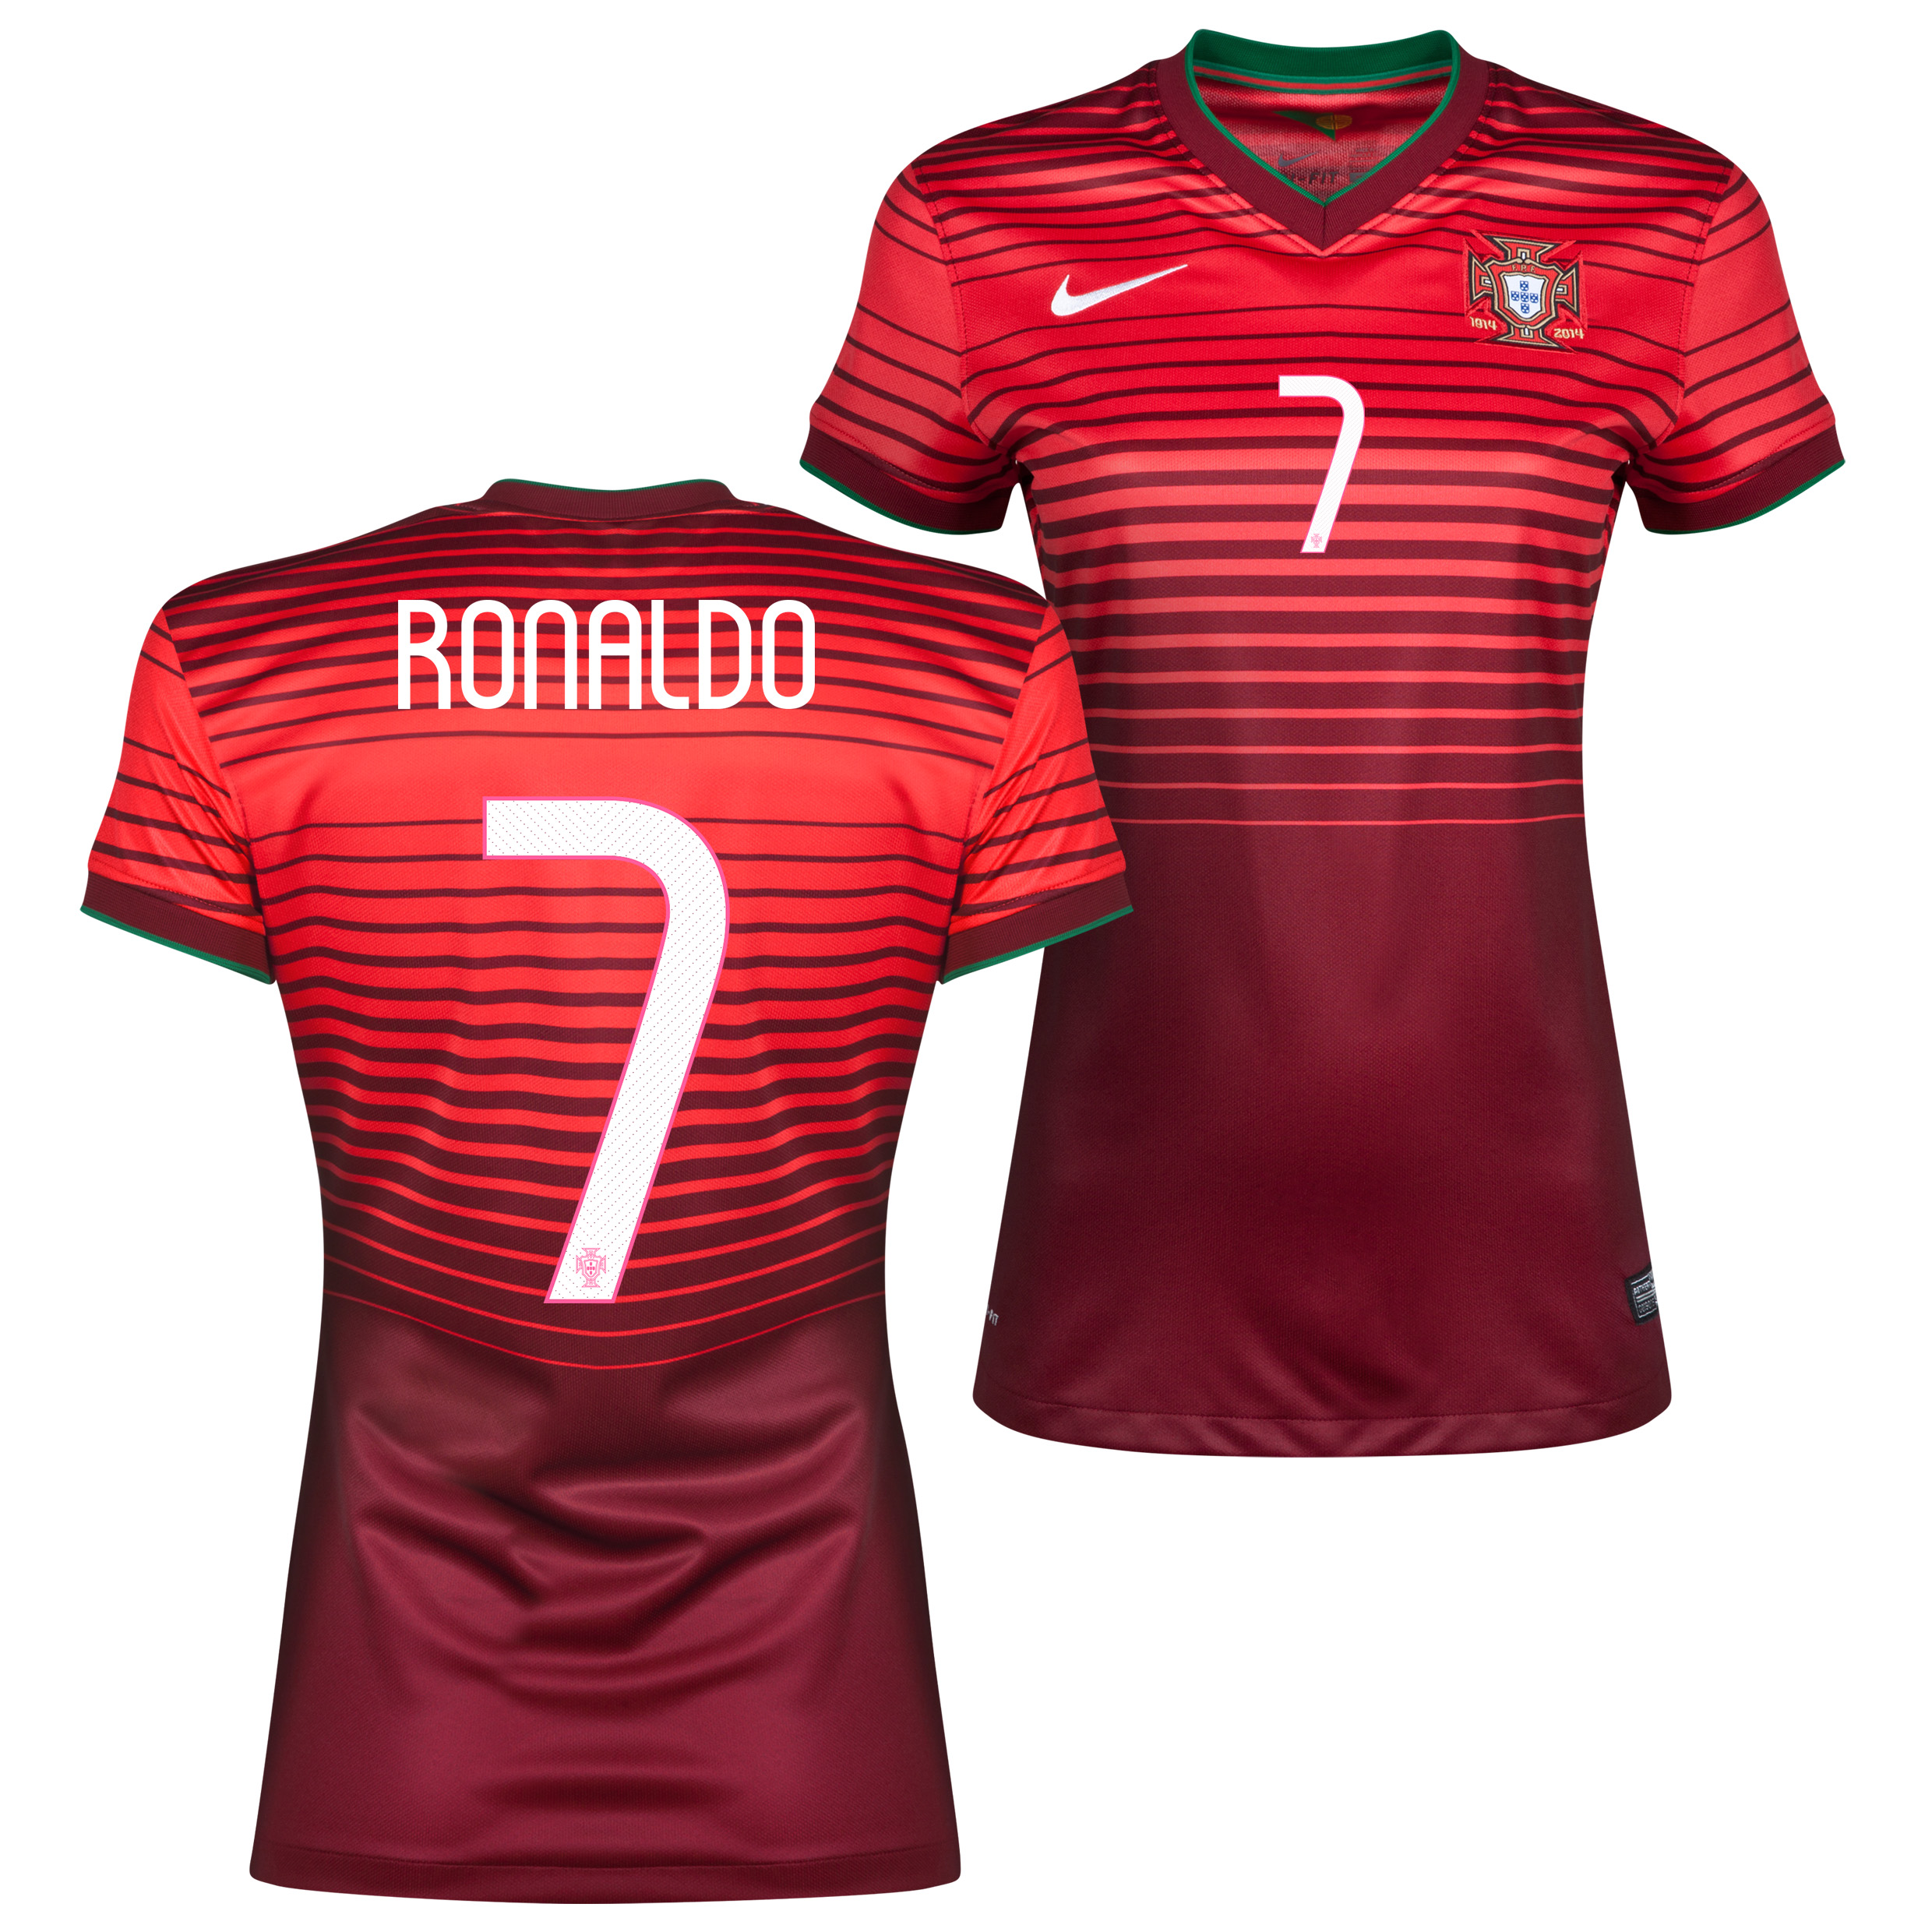 Portugal Home Shirt 2013/15 - Womens Red with Ronaldo 7 printing